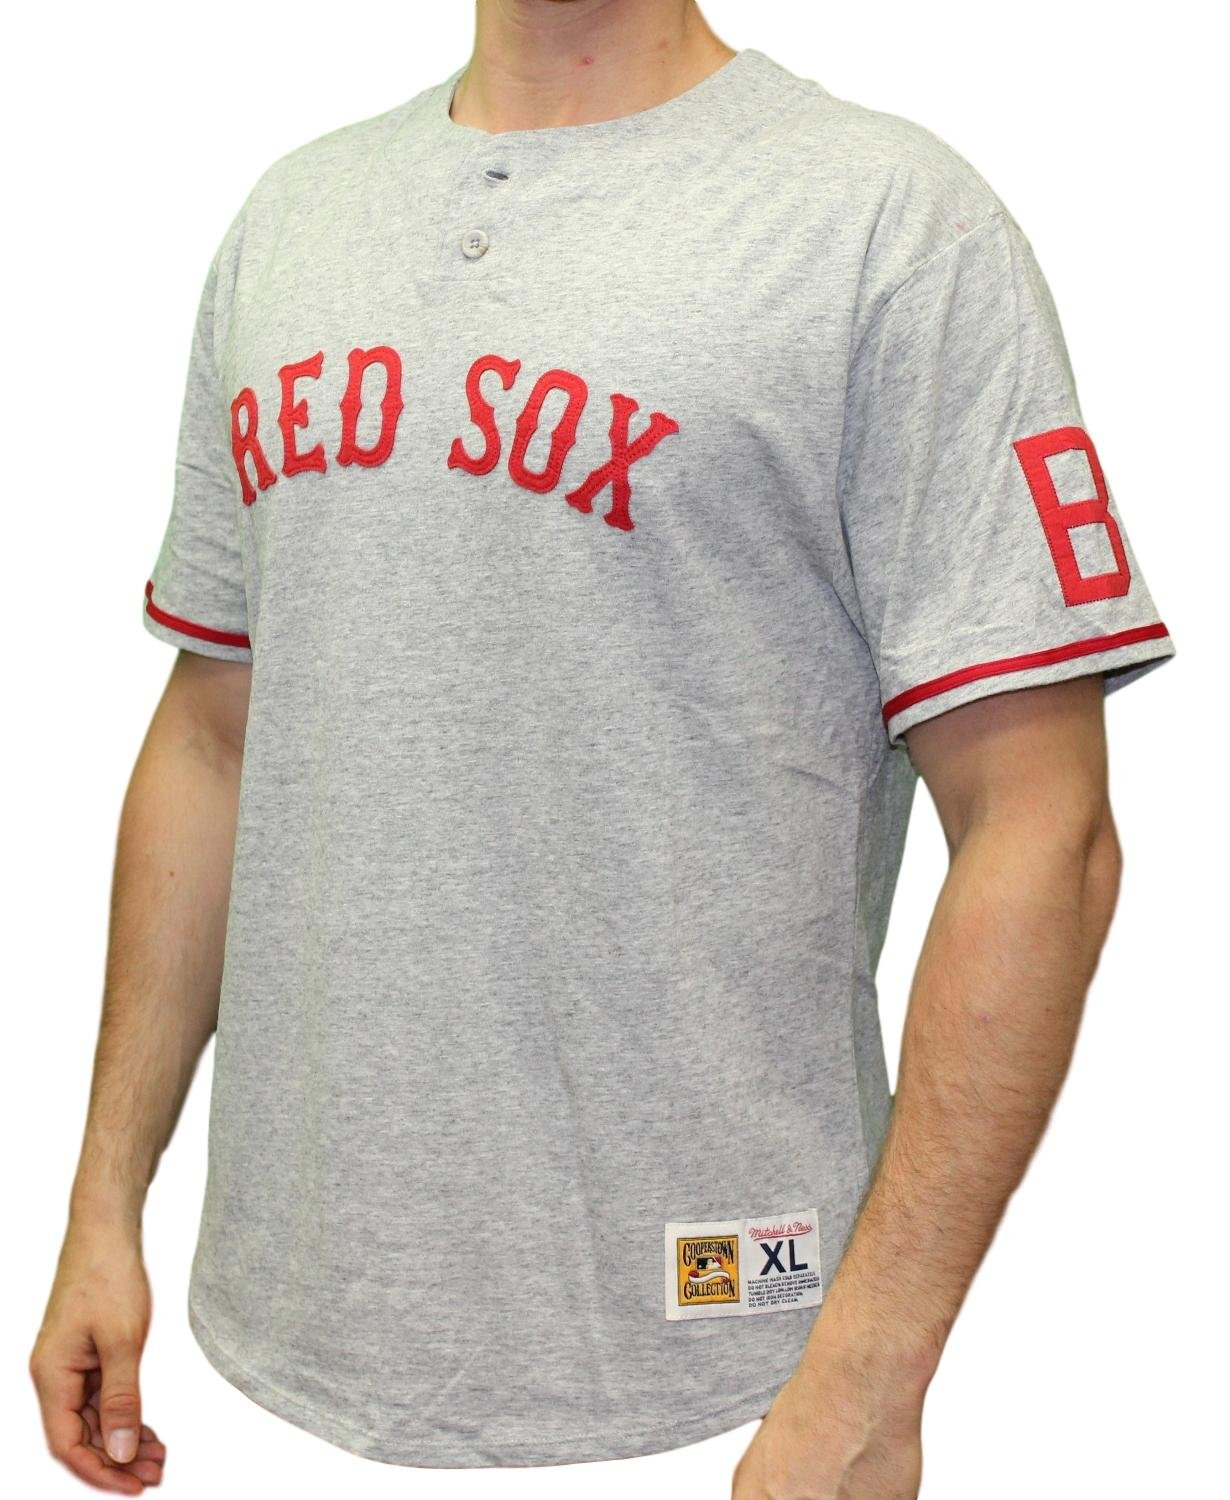 6584ad05 Retro Boston Red Sox Shirts - DREAMWORKS